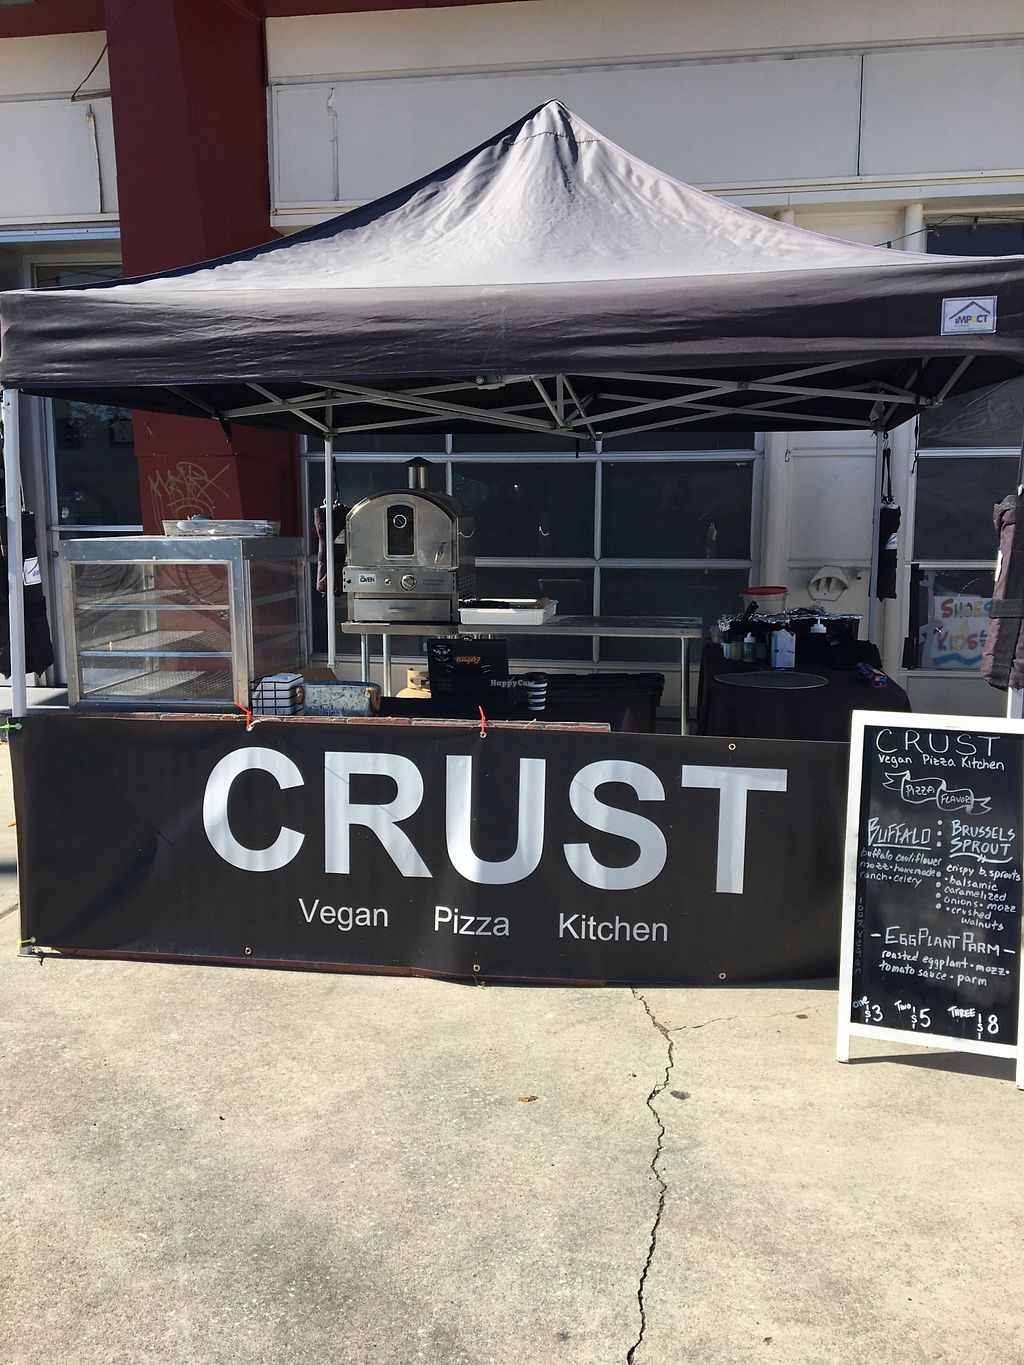 """Photo of Crust Vegan Pizza Kitchen  by <a href=""""/members/profile/Crustvpk"""">Crustvpk</a> <br/>Set Up <br/> November 13, 2017  - <a href='/contact/abuse/image/105018/325341'>Report</a>"""